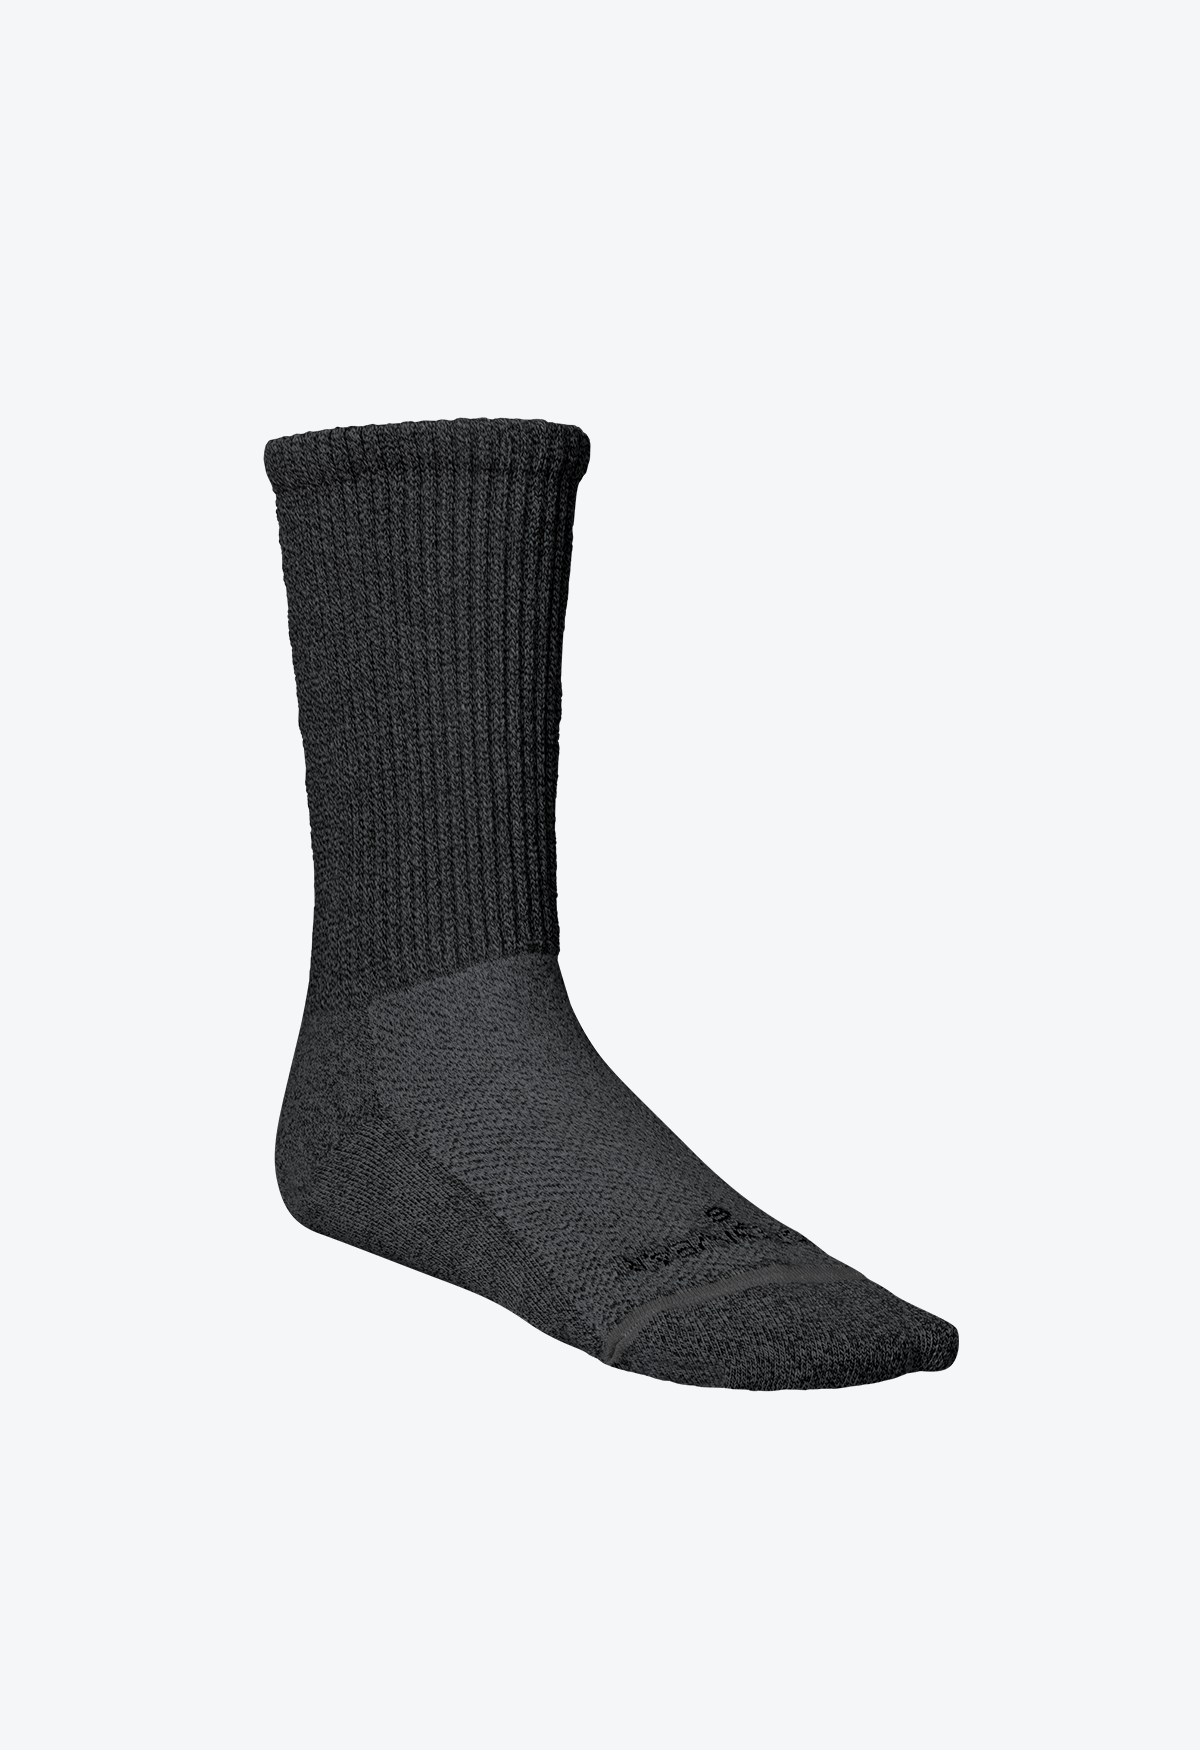 Incrediwear Circulation Socks Ankle Black